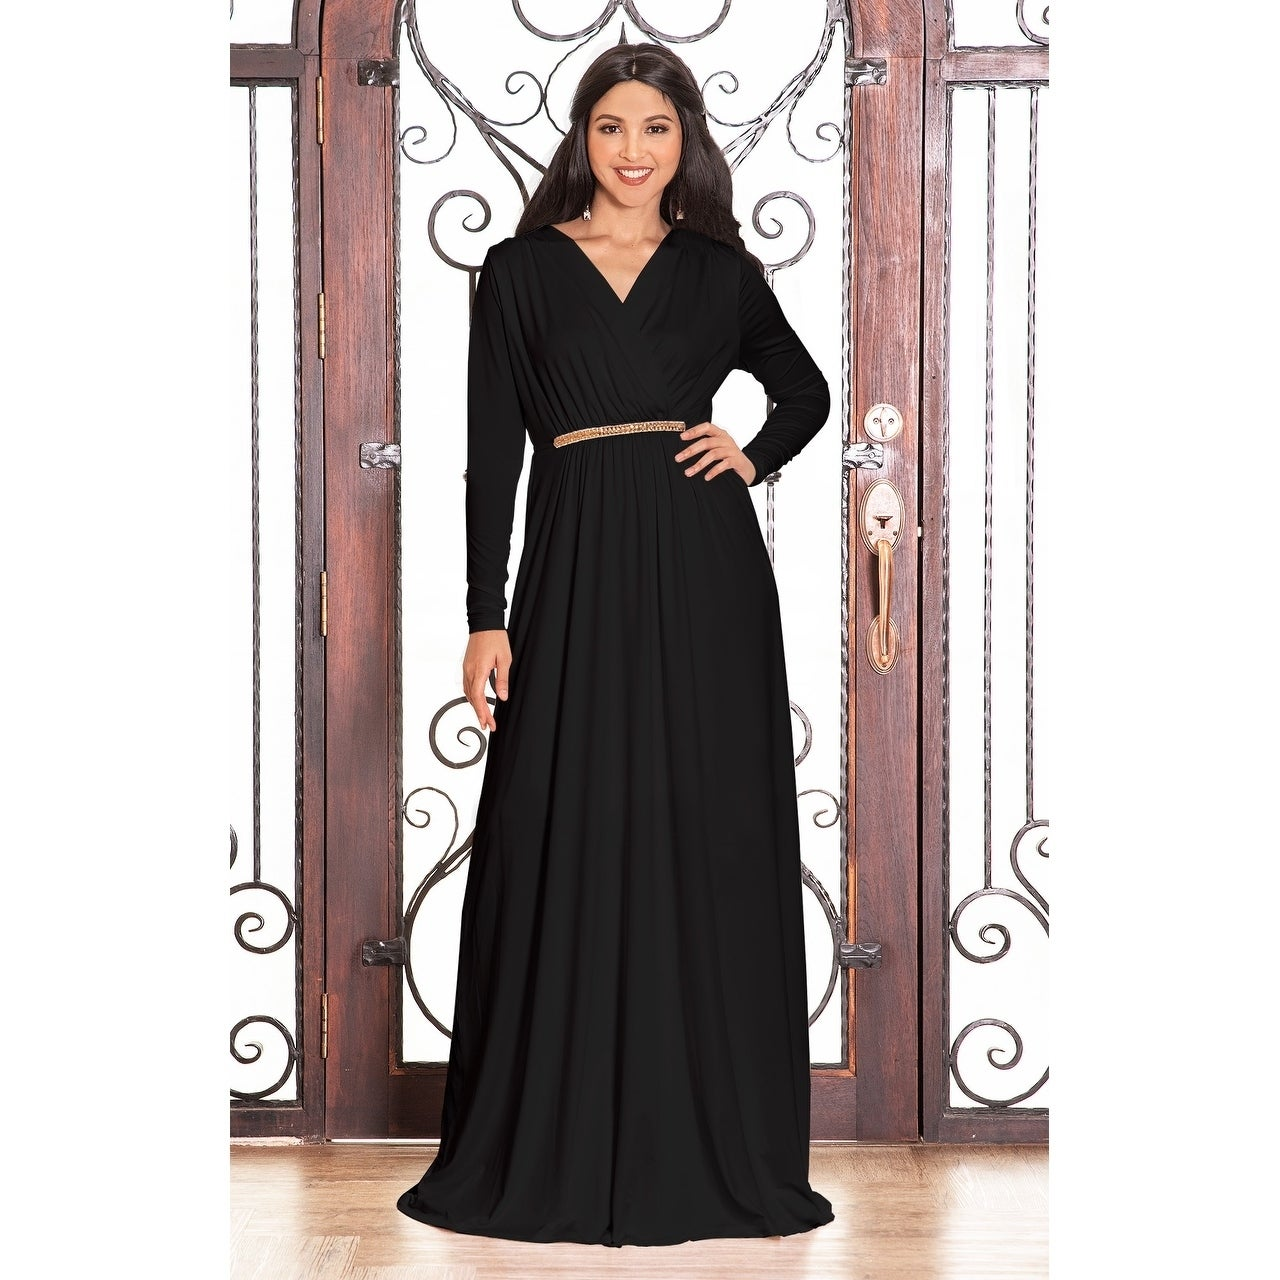 50a0b42b878 Shop KOH KOH Women s Long Sleeve Caftan Maxi Dress with Glamorous Belt -  Free Shipping On Orders Over  45 - Overstock - 10910391